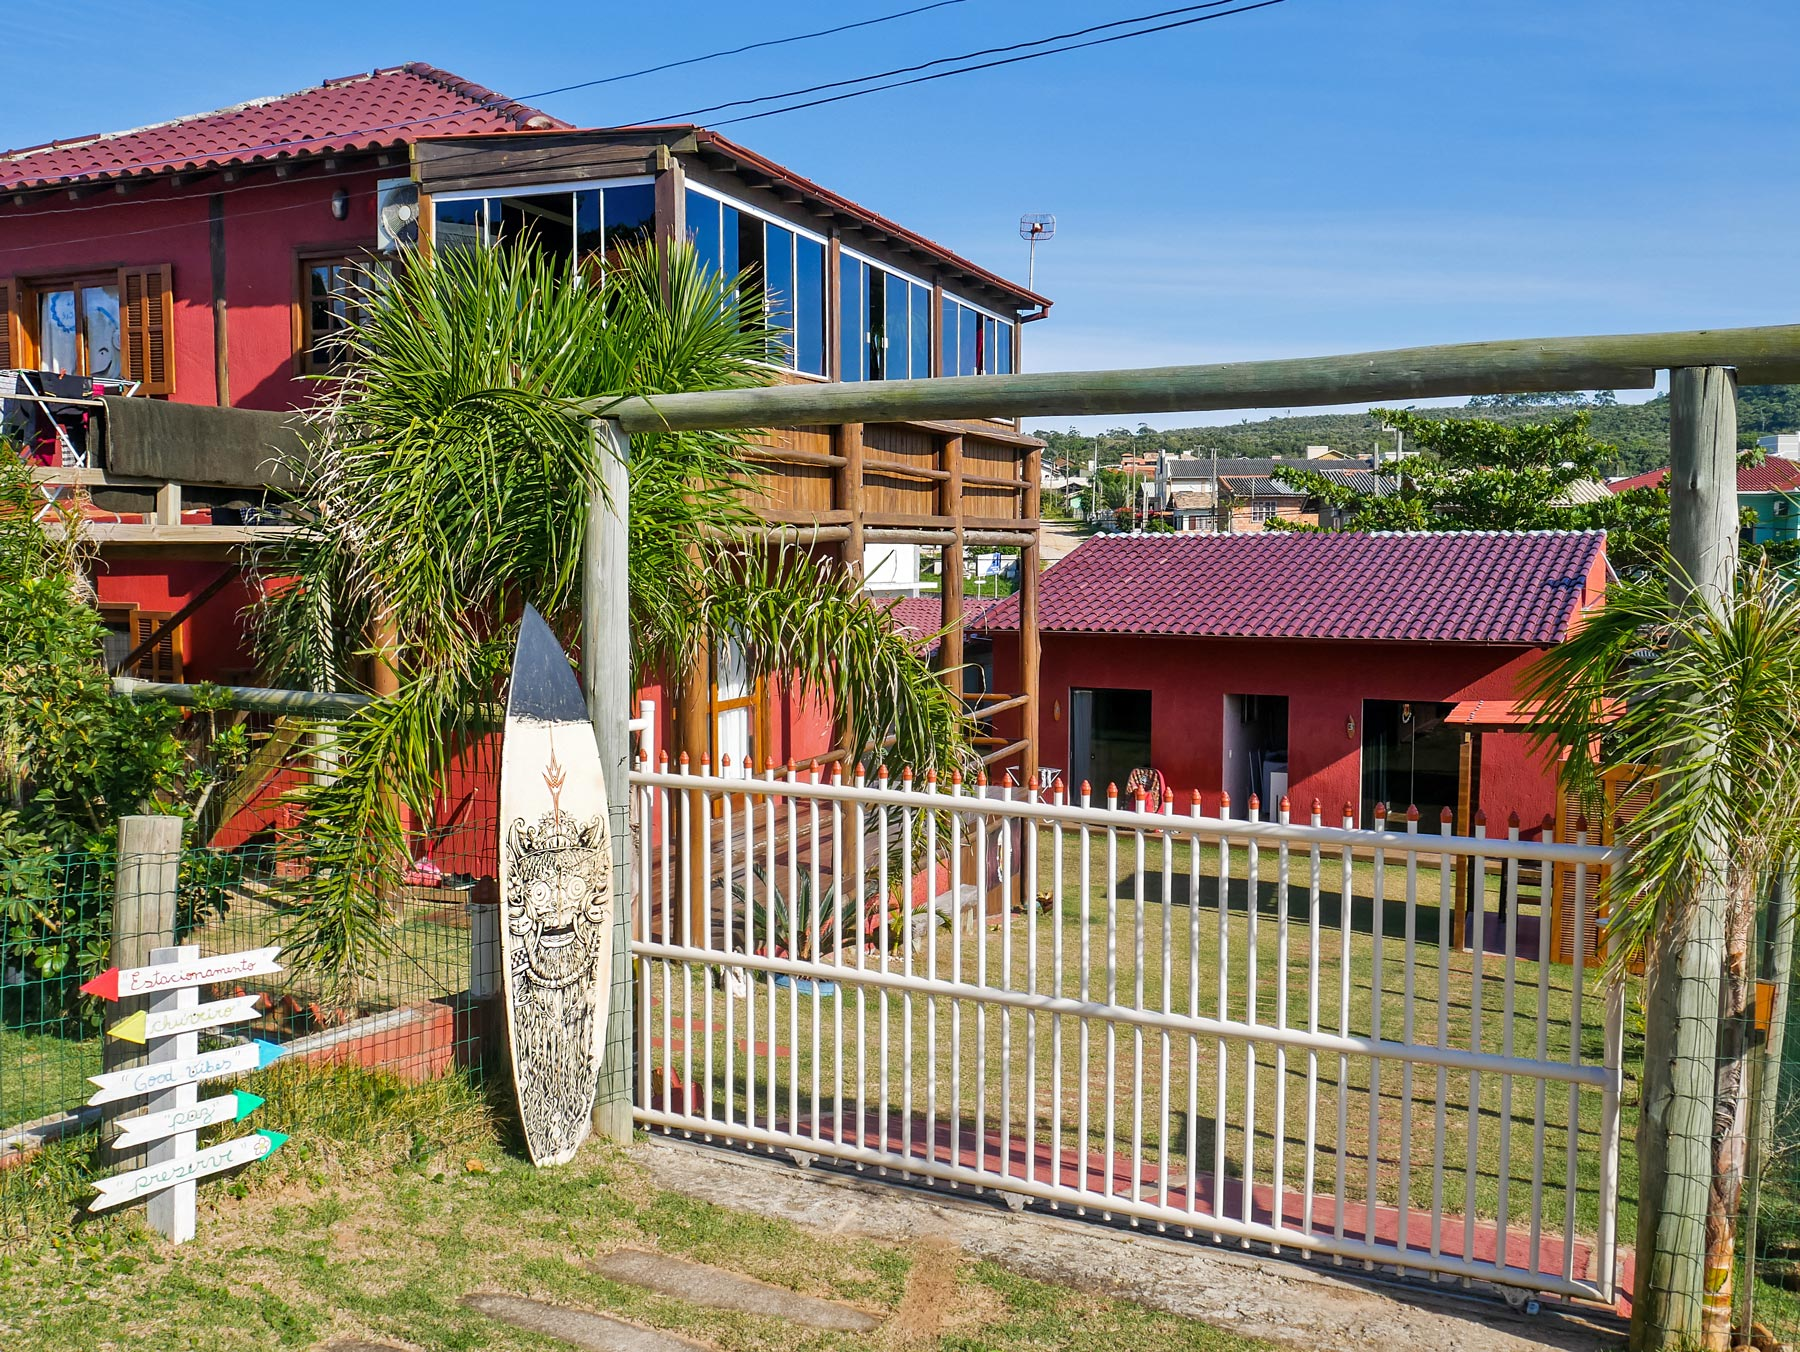 Red houses with green space in Imbituba, Brazil